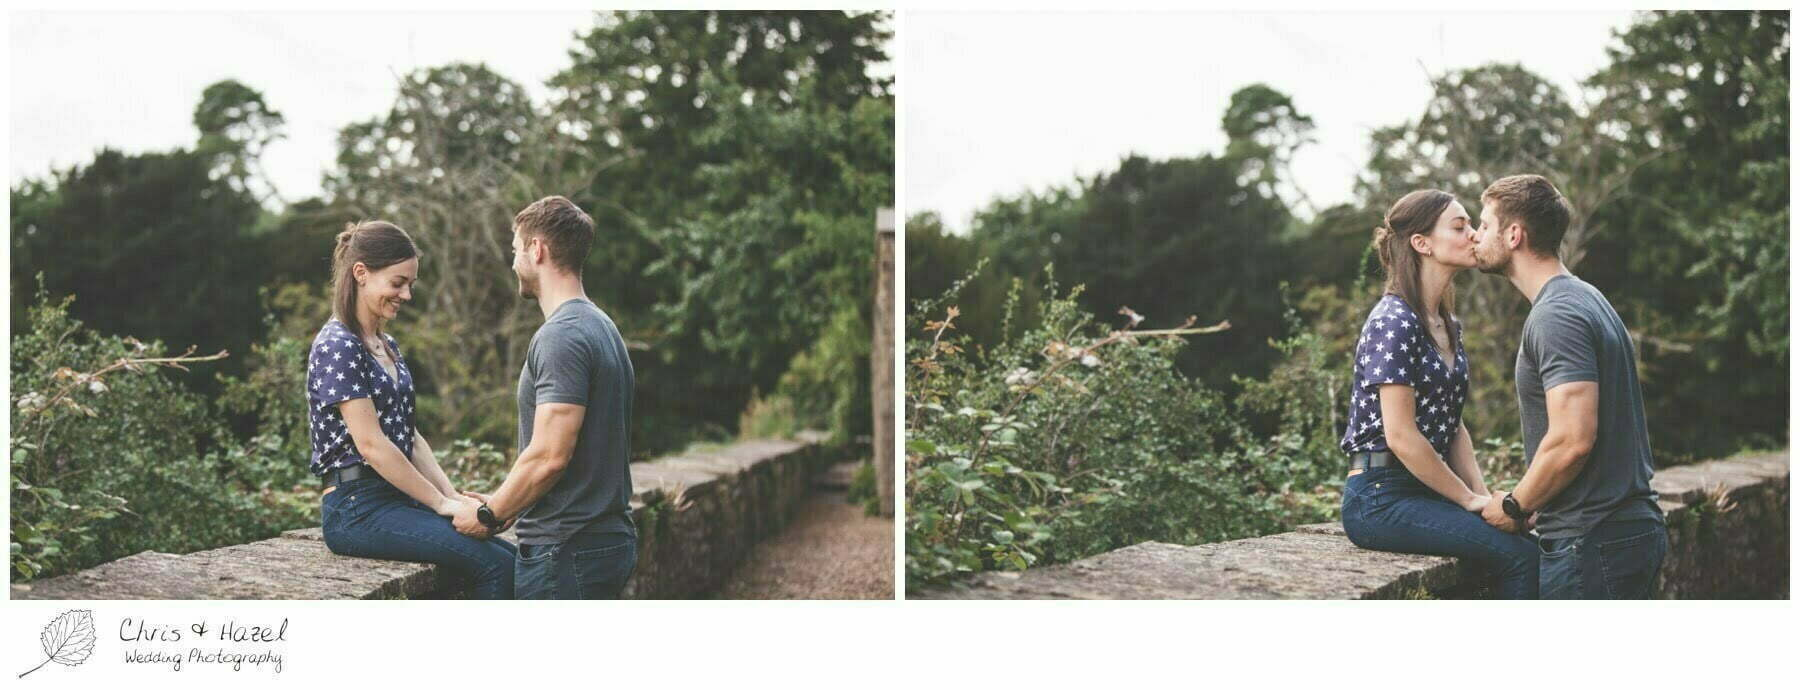 Walled Garden at Mells, Somerset, Pre wedding, Engagement photography, Engagement session, Walled Garden at Mells engagement session photography, Walled Garden at Mells engagement session photographer, Walled Garden at Mells engagement photography, Walled Garden at Mells engagement photographer, Walled Garden at Mells e-session, Walled Garden at Mells Somerset e-session, Walled Garden at Mells Somerset Pre-wedding photos, Pre-wedding Walled Garden at Mells Somerset, Pre-wedding photographer Walled Garden at Mells Somerset, Pre-wedding photography Walled Garden at Mells Somerset, Pre-wed Session Photographer Walled Garden at Mells Somerset, Pre-Wed Session Photography Walled Garden at Mells Somerset,